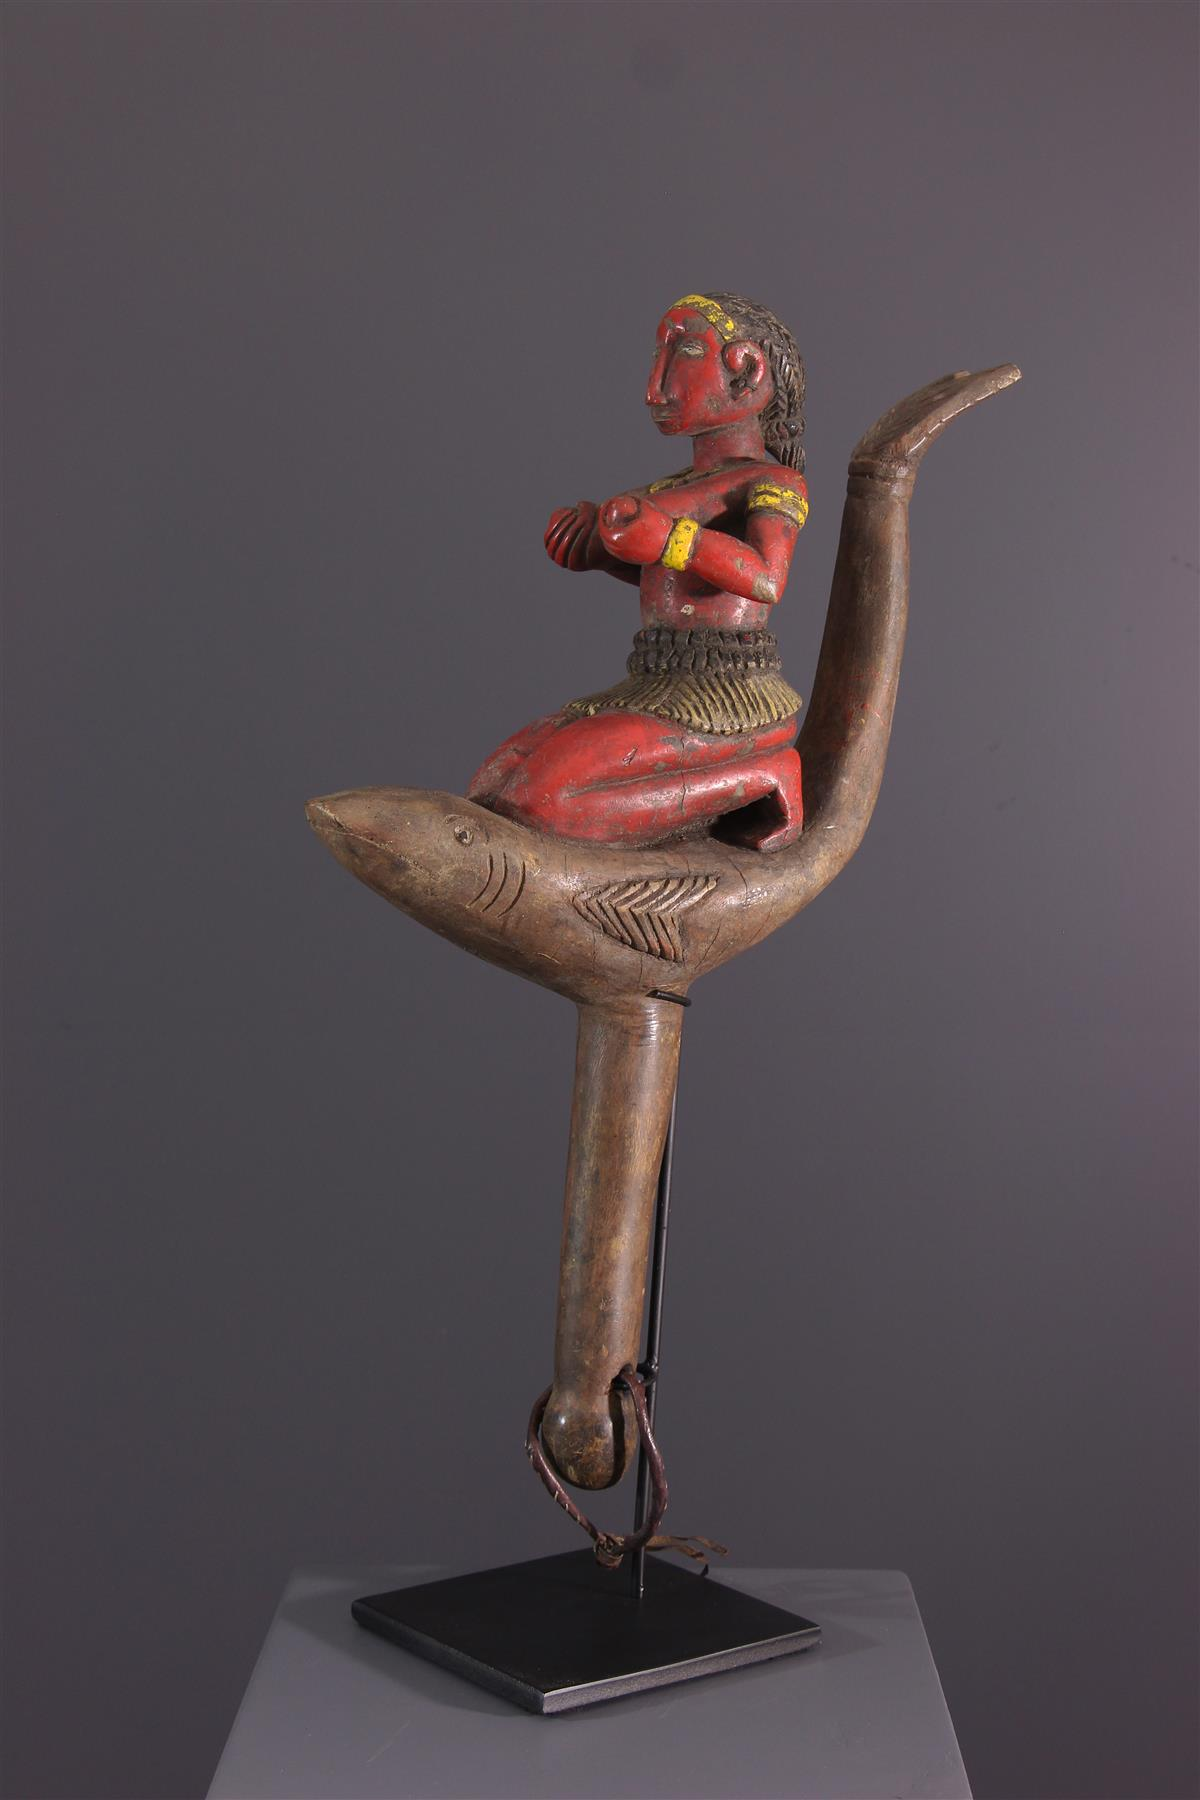 Sceptre Baga - Tribal art